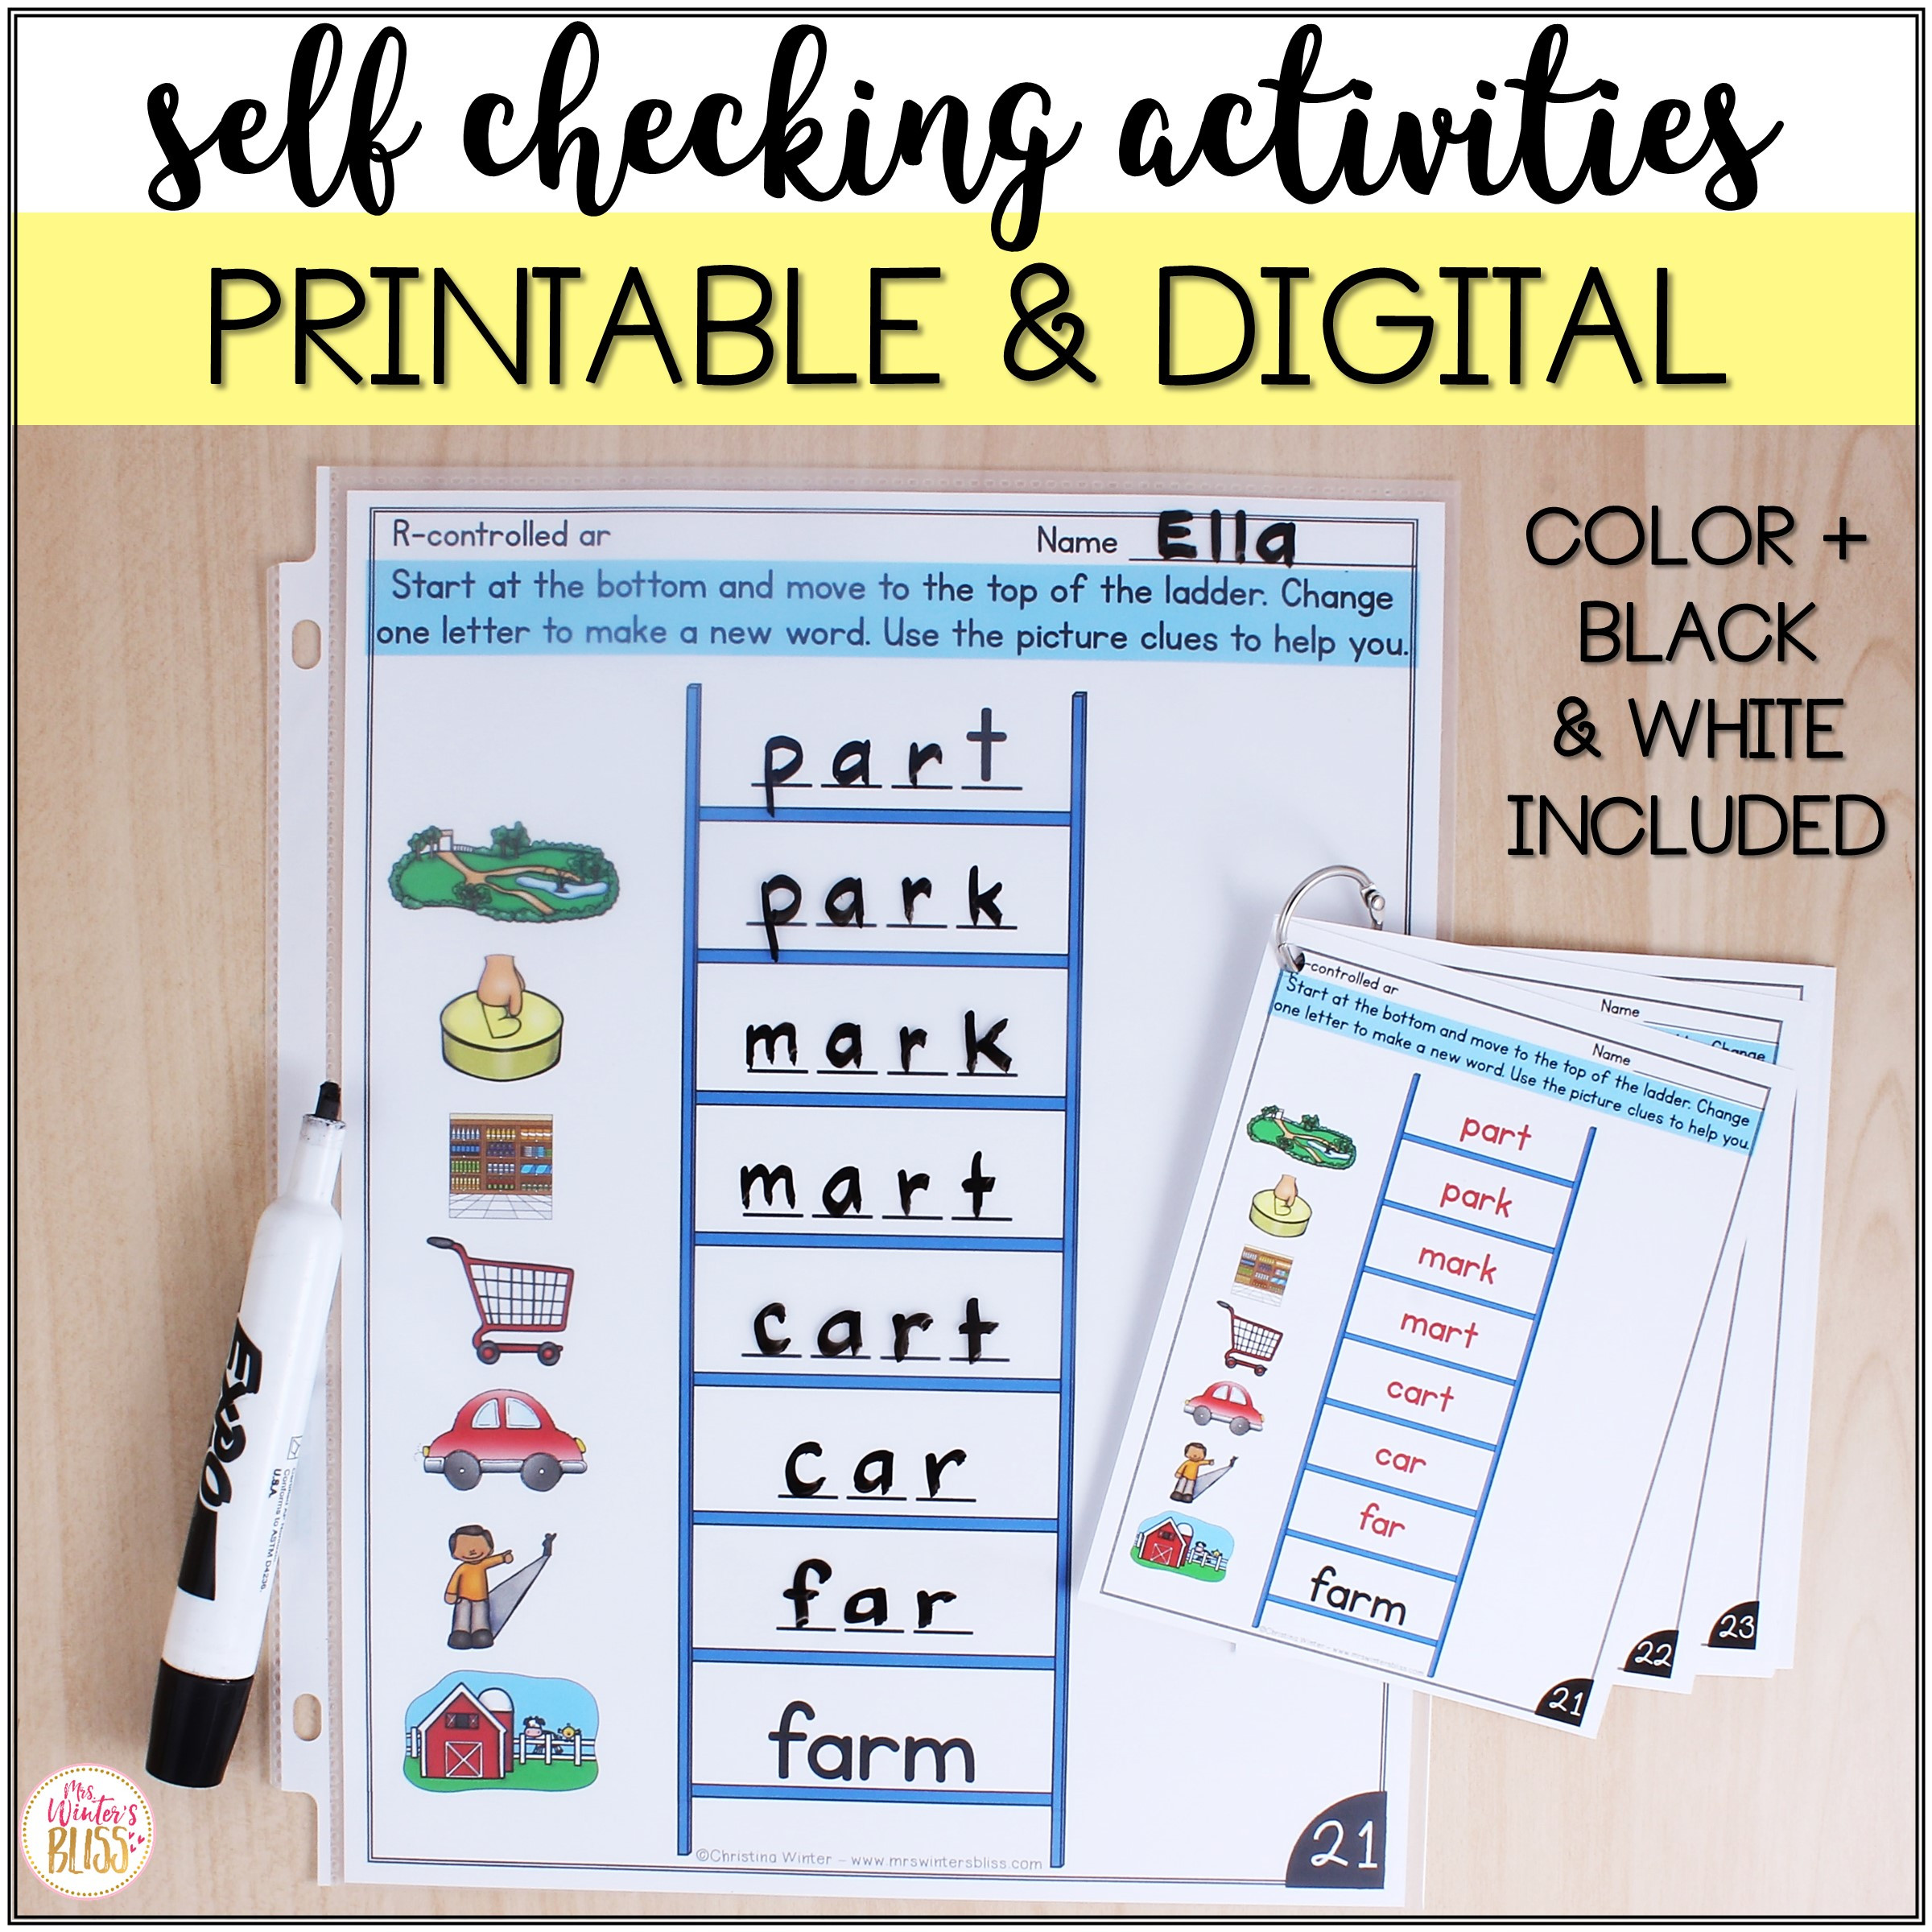 Free Printable Word Ladders Word Ladders Printable and Digital Phonics Activities for Distance Learning